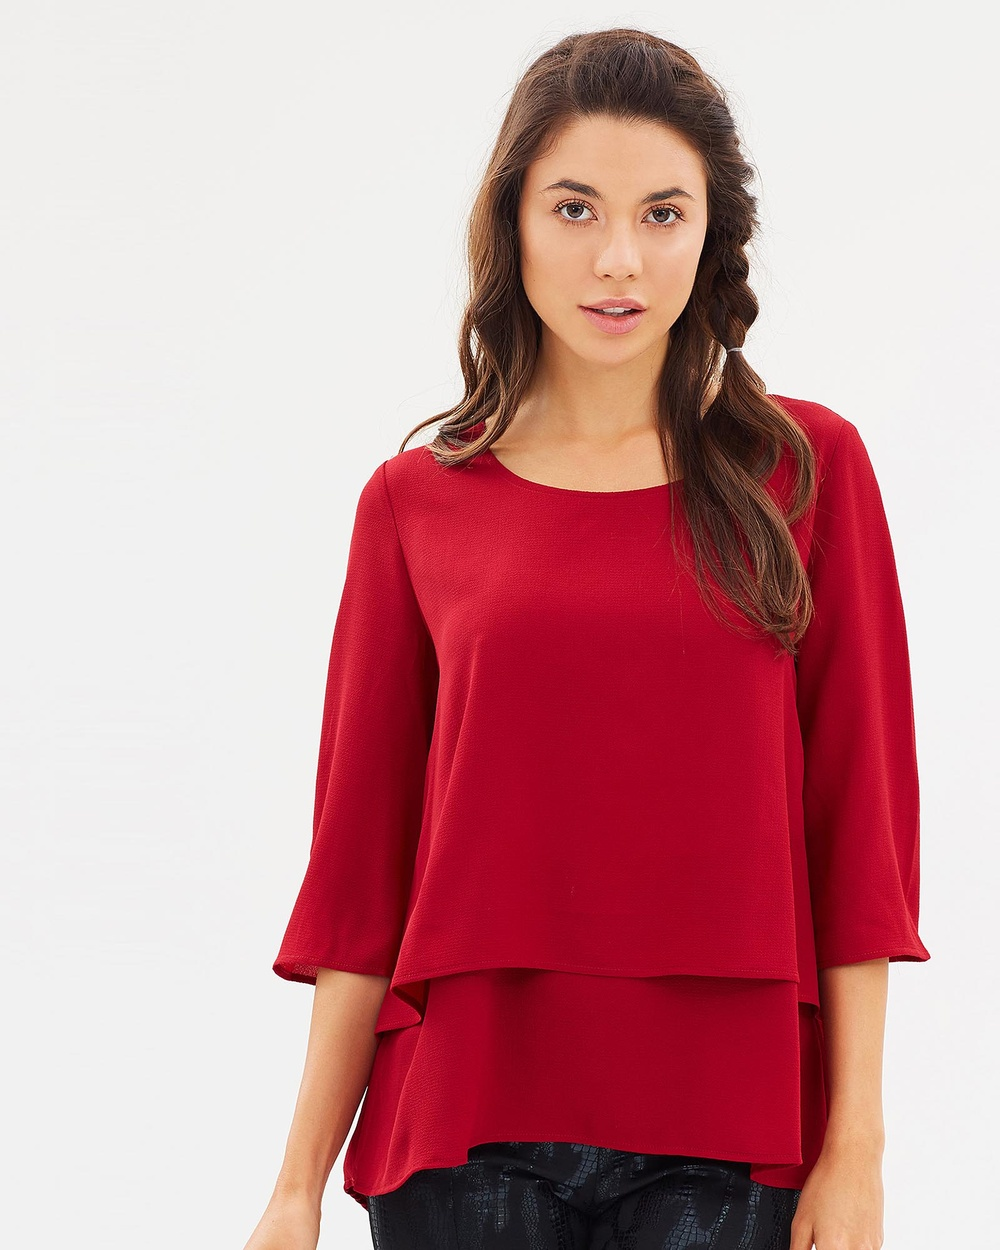 Faye Black Label Look of love Layered Tunic Tops Scarlet Look of love Layered Tunic